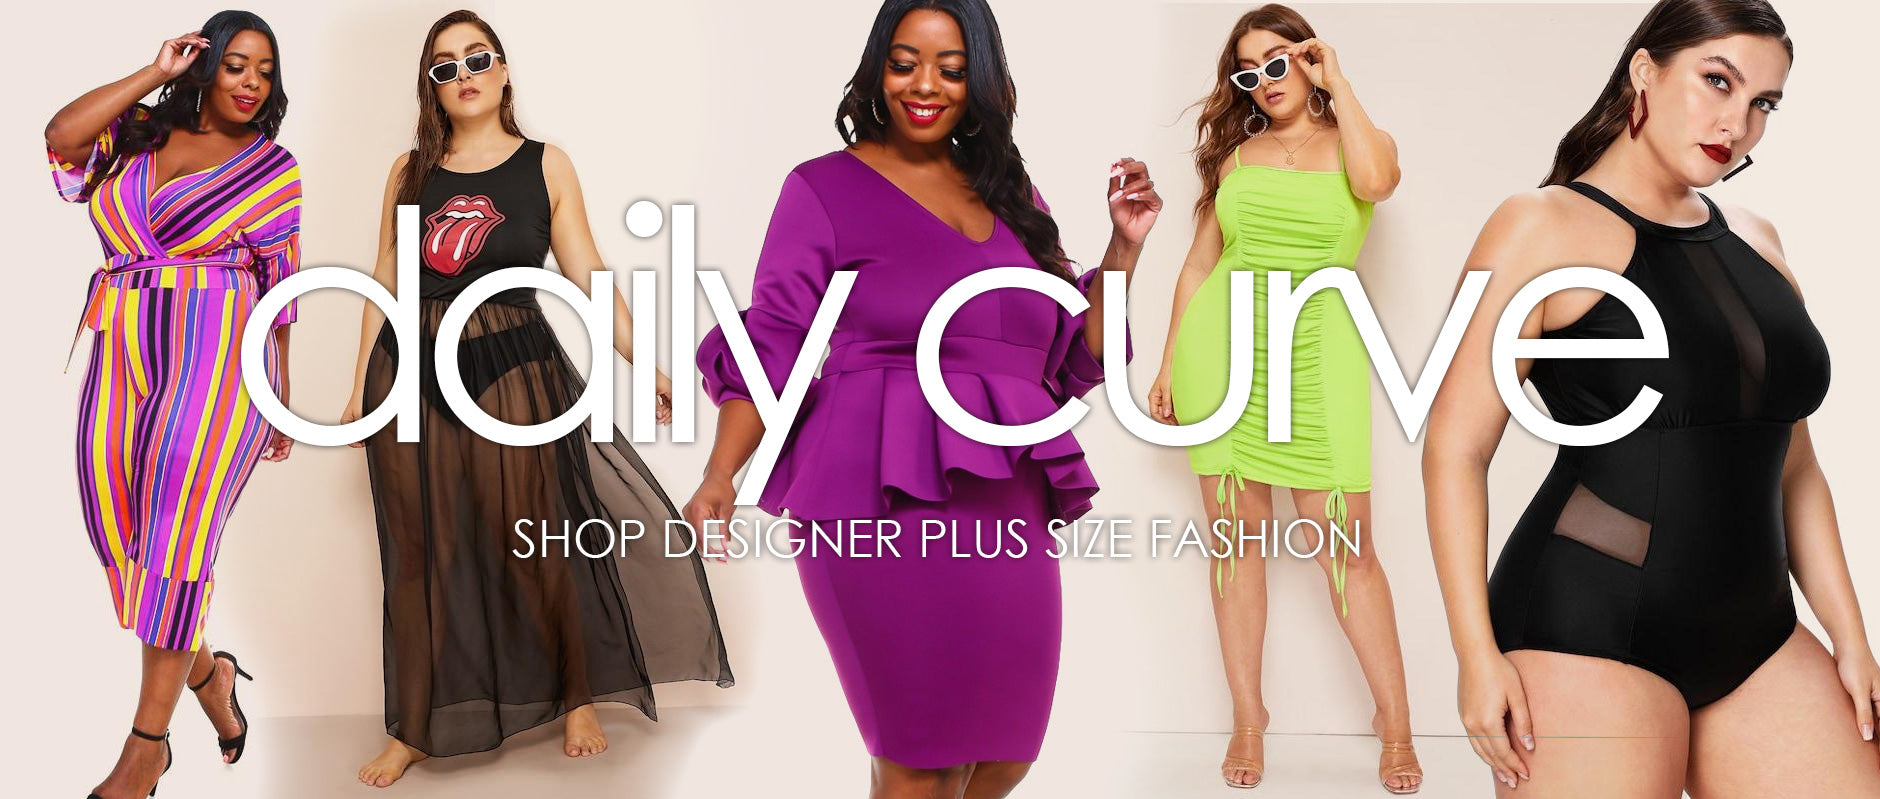 02da48257 Welcome to Plussizefix - Shop Plus Size Clothing, Clubwear and more!